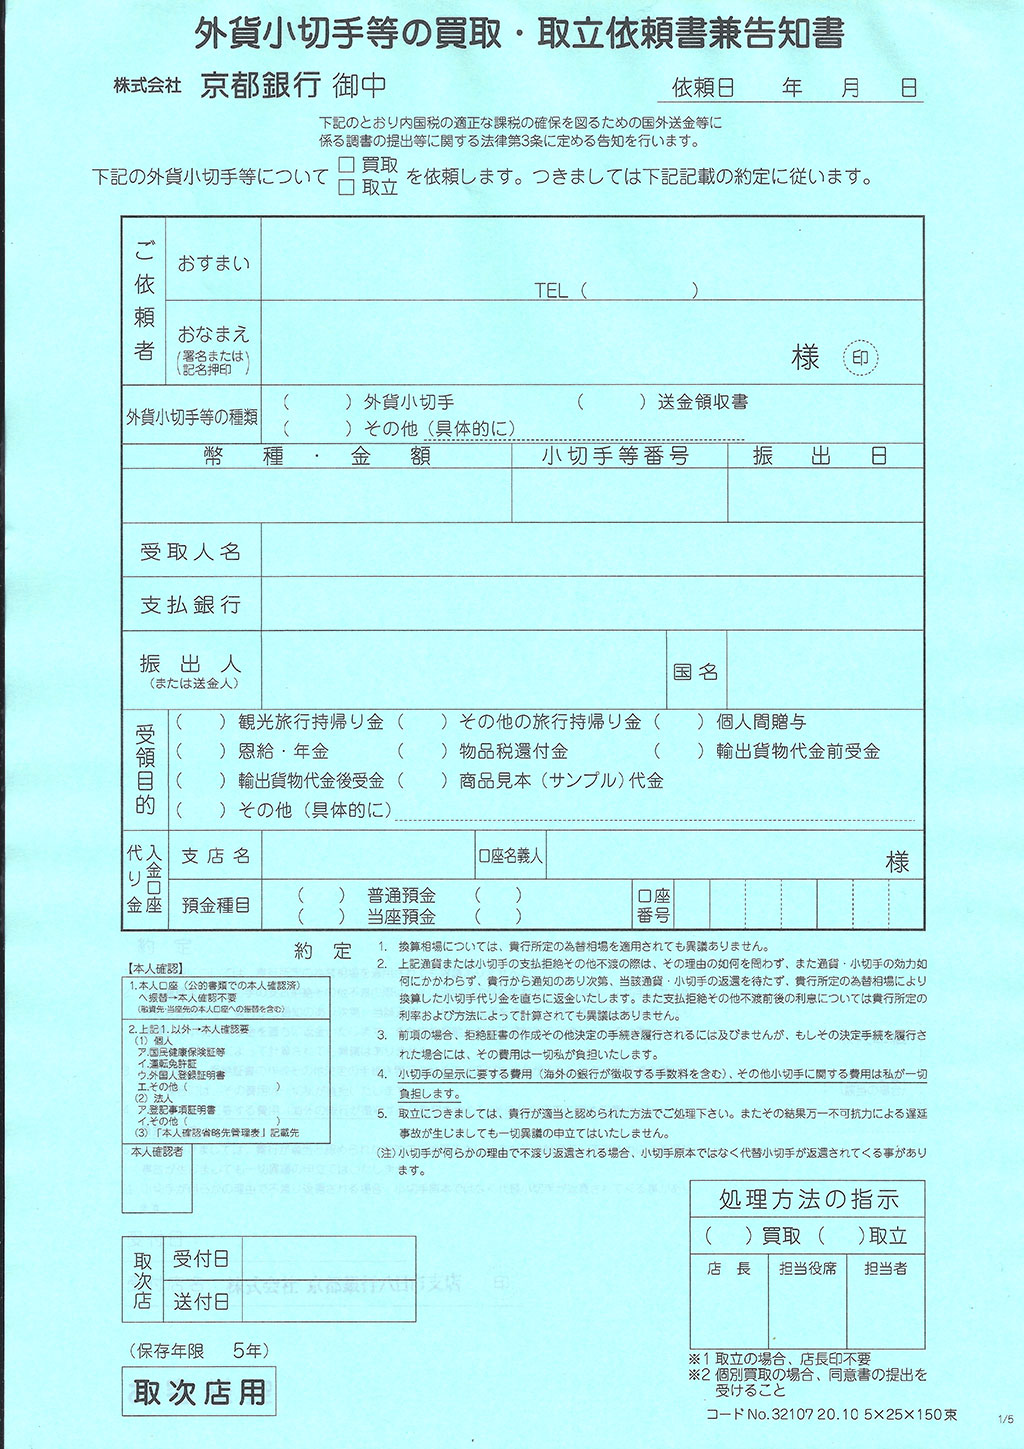 Cashing A Cheque In Japan My Experience How To Guide - Check-filled-out